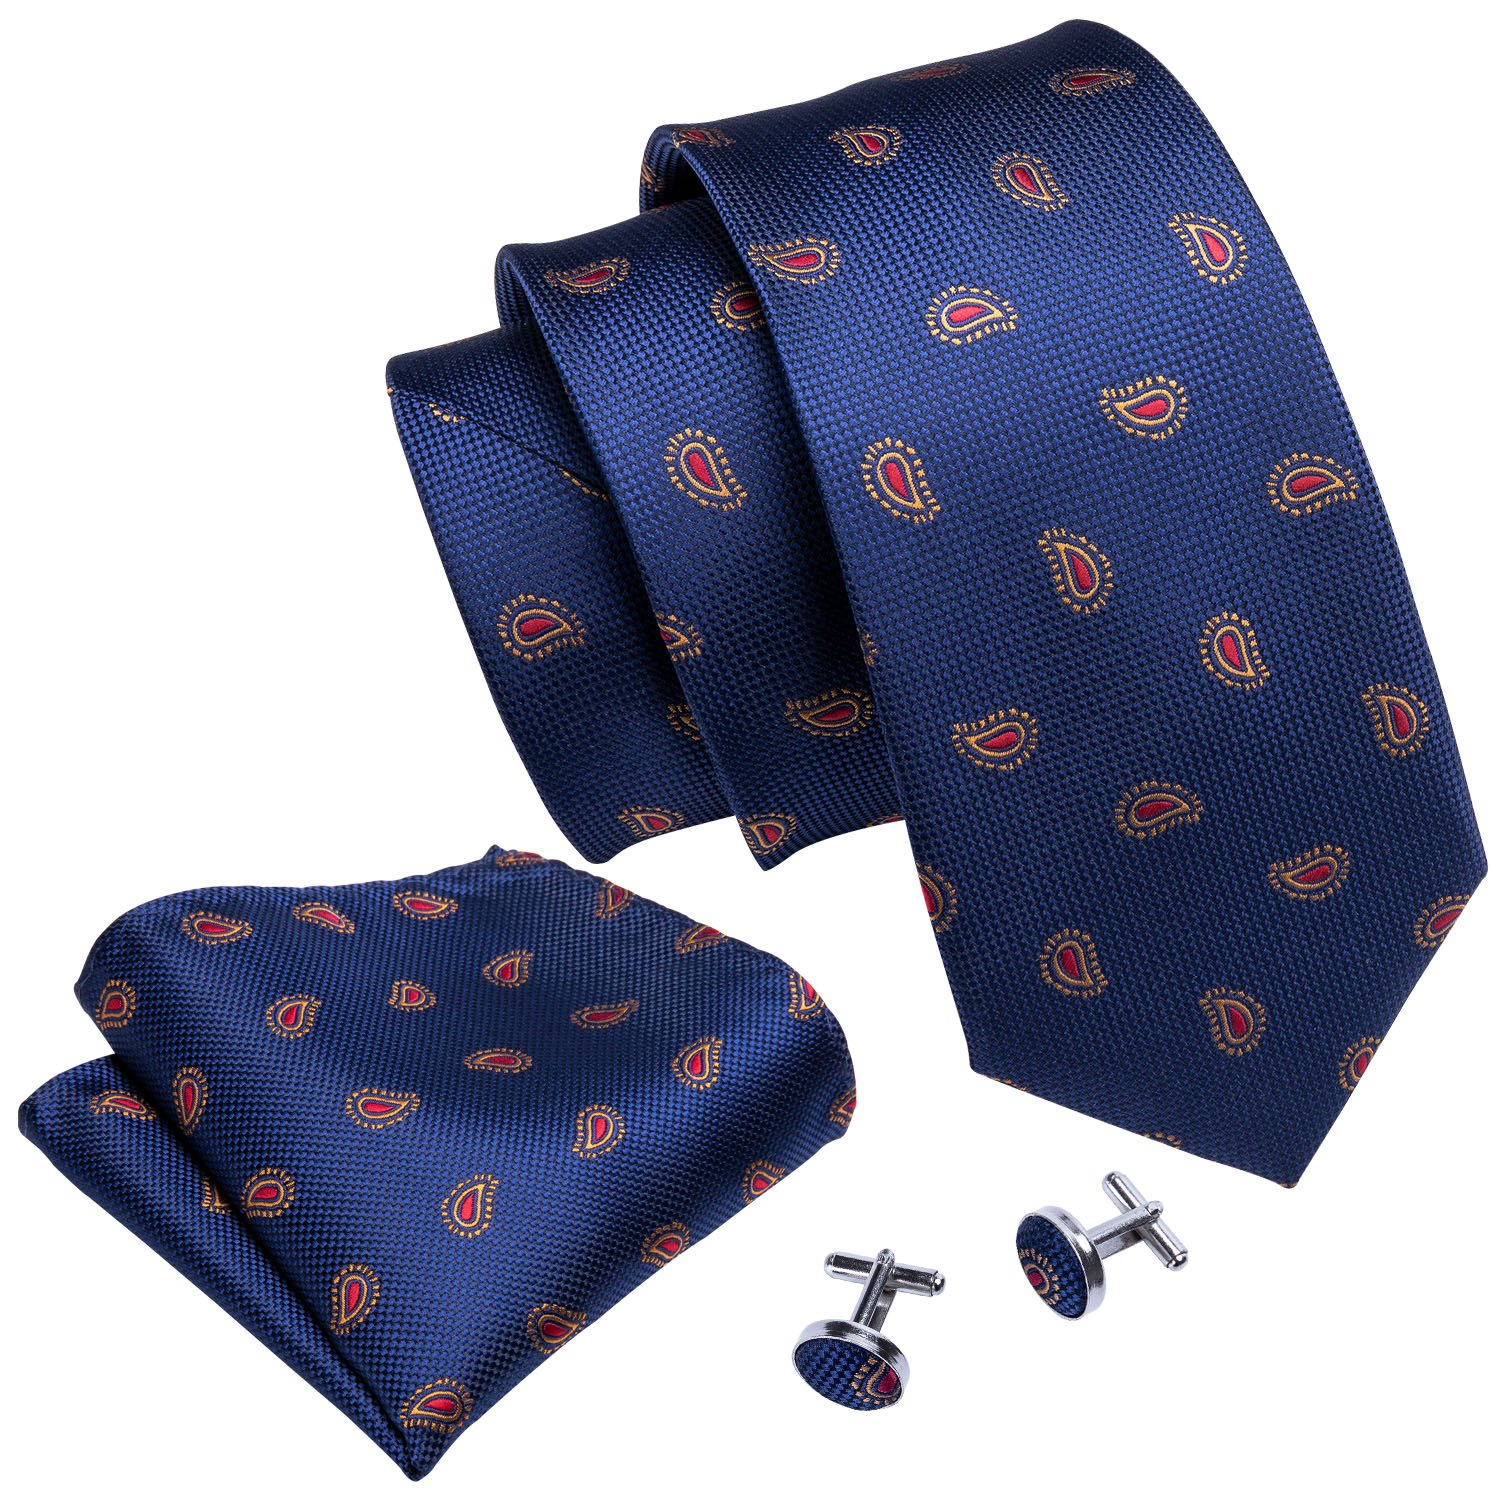 Blue and Red Tie Set Woven Paisley Handkerchief Cufflinks